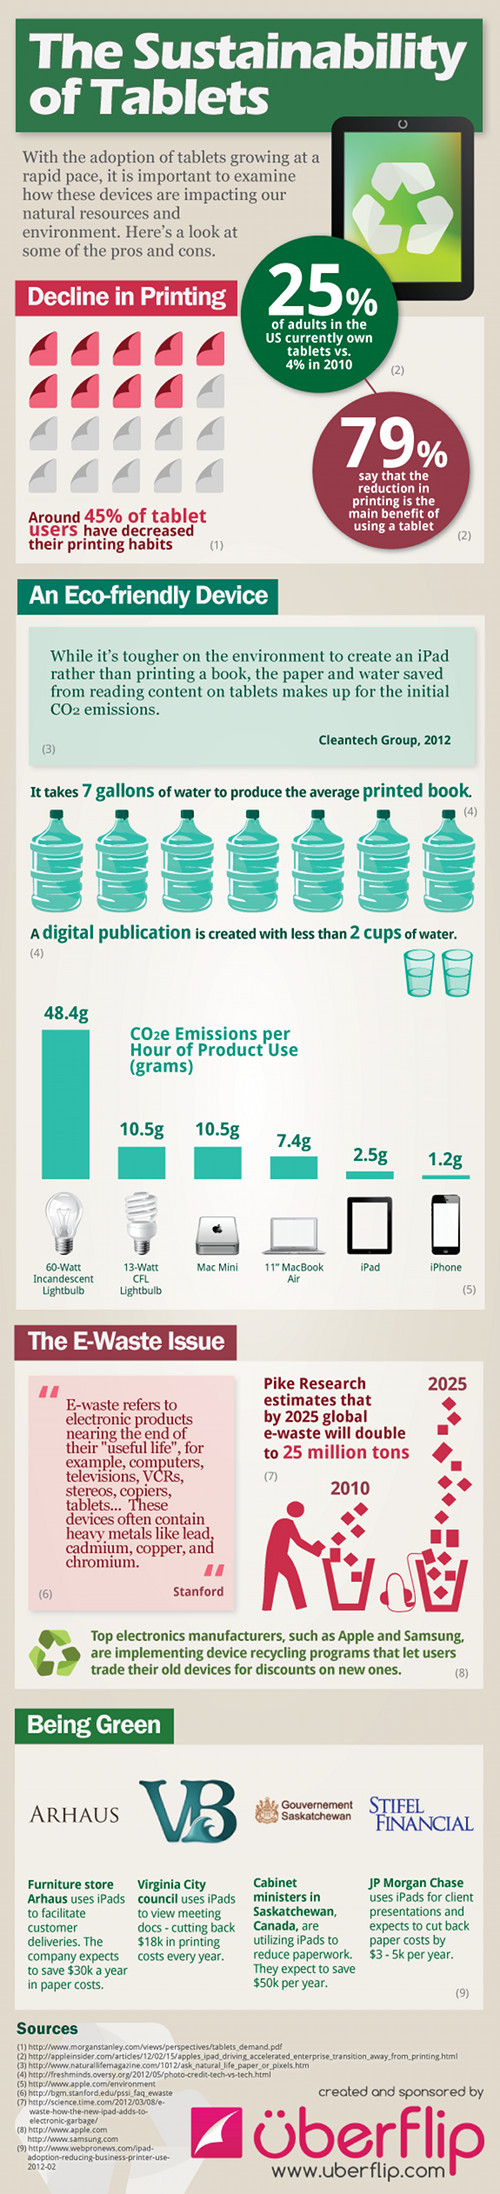 Are Tablets Sustainable?